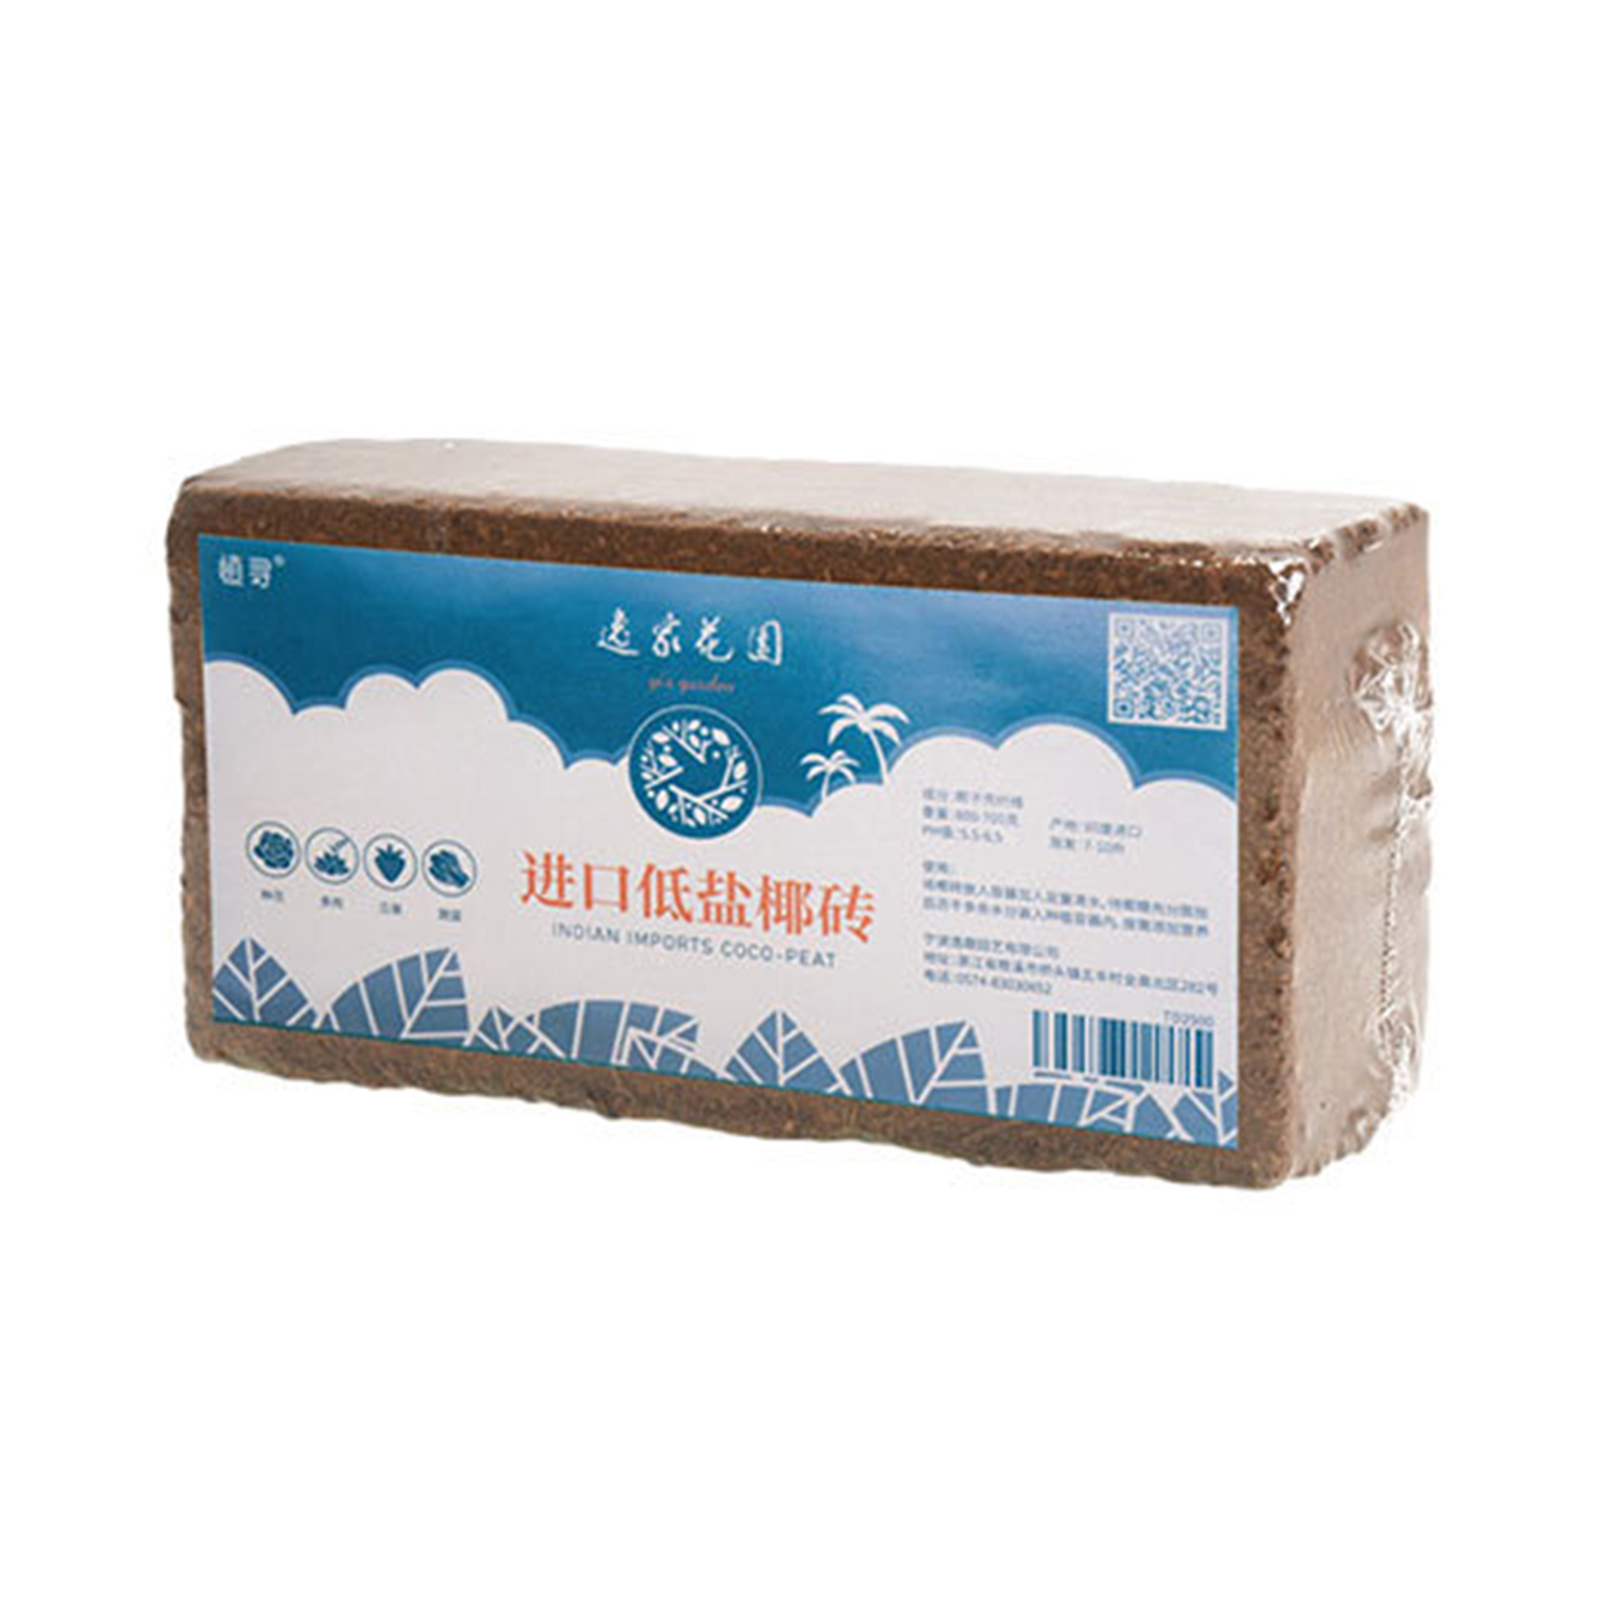 Coconut Growth Medium Compressed Coconut Brick Growing Flowers And Vegetables Succulent Potted Greenhouse Planting Soil Coconut